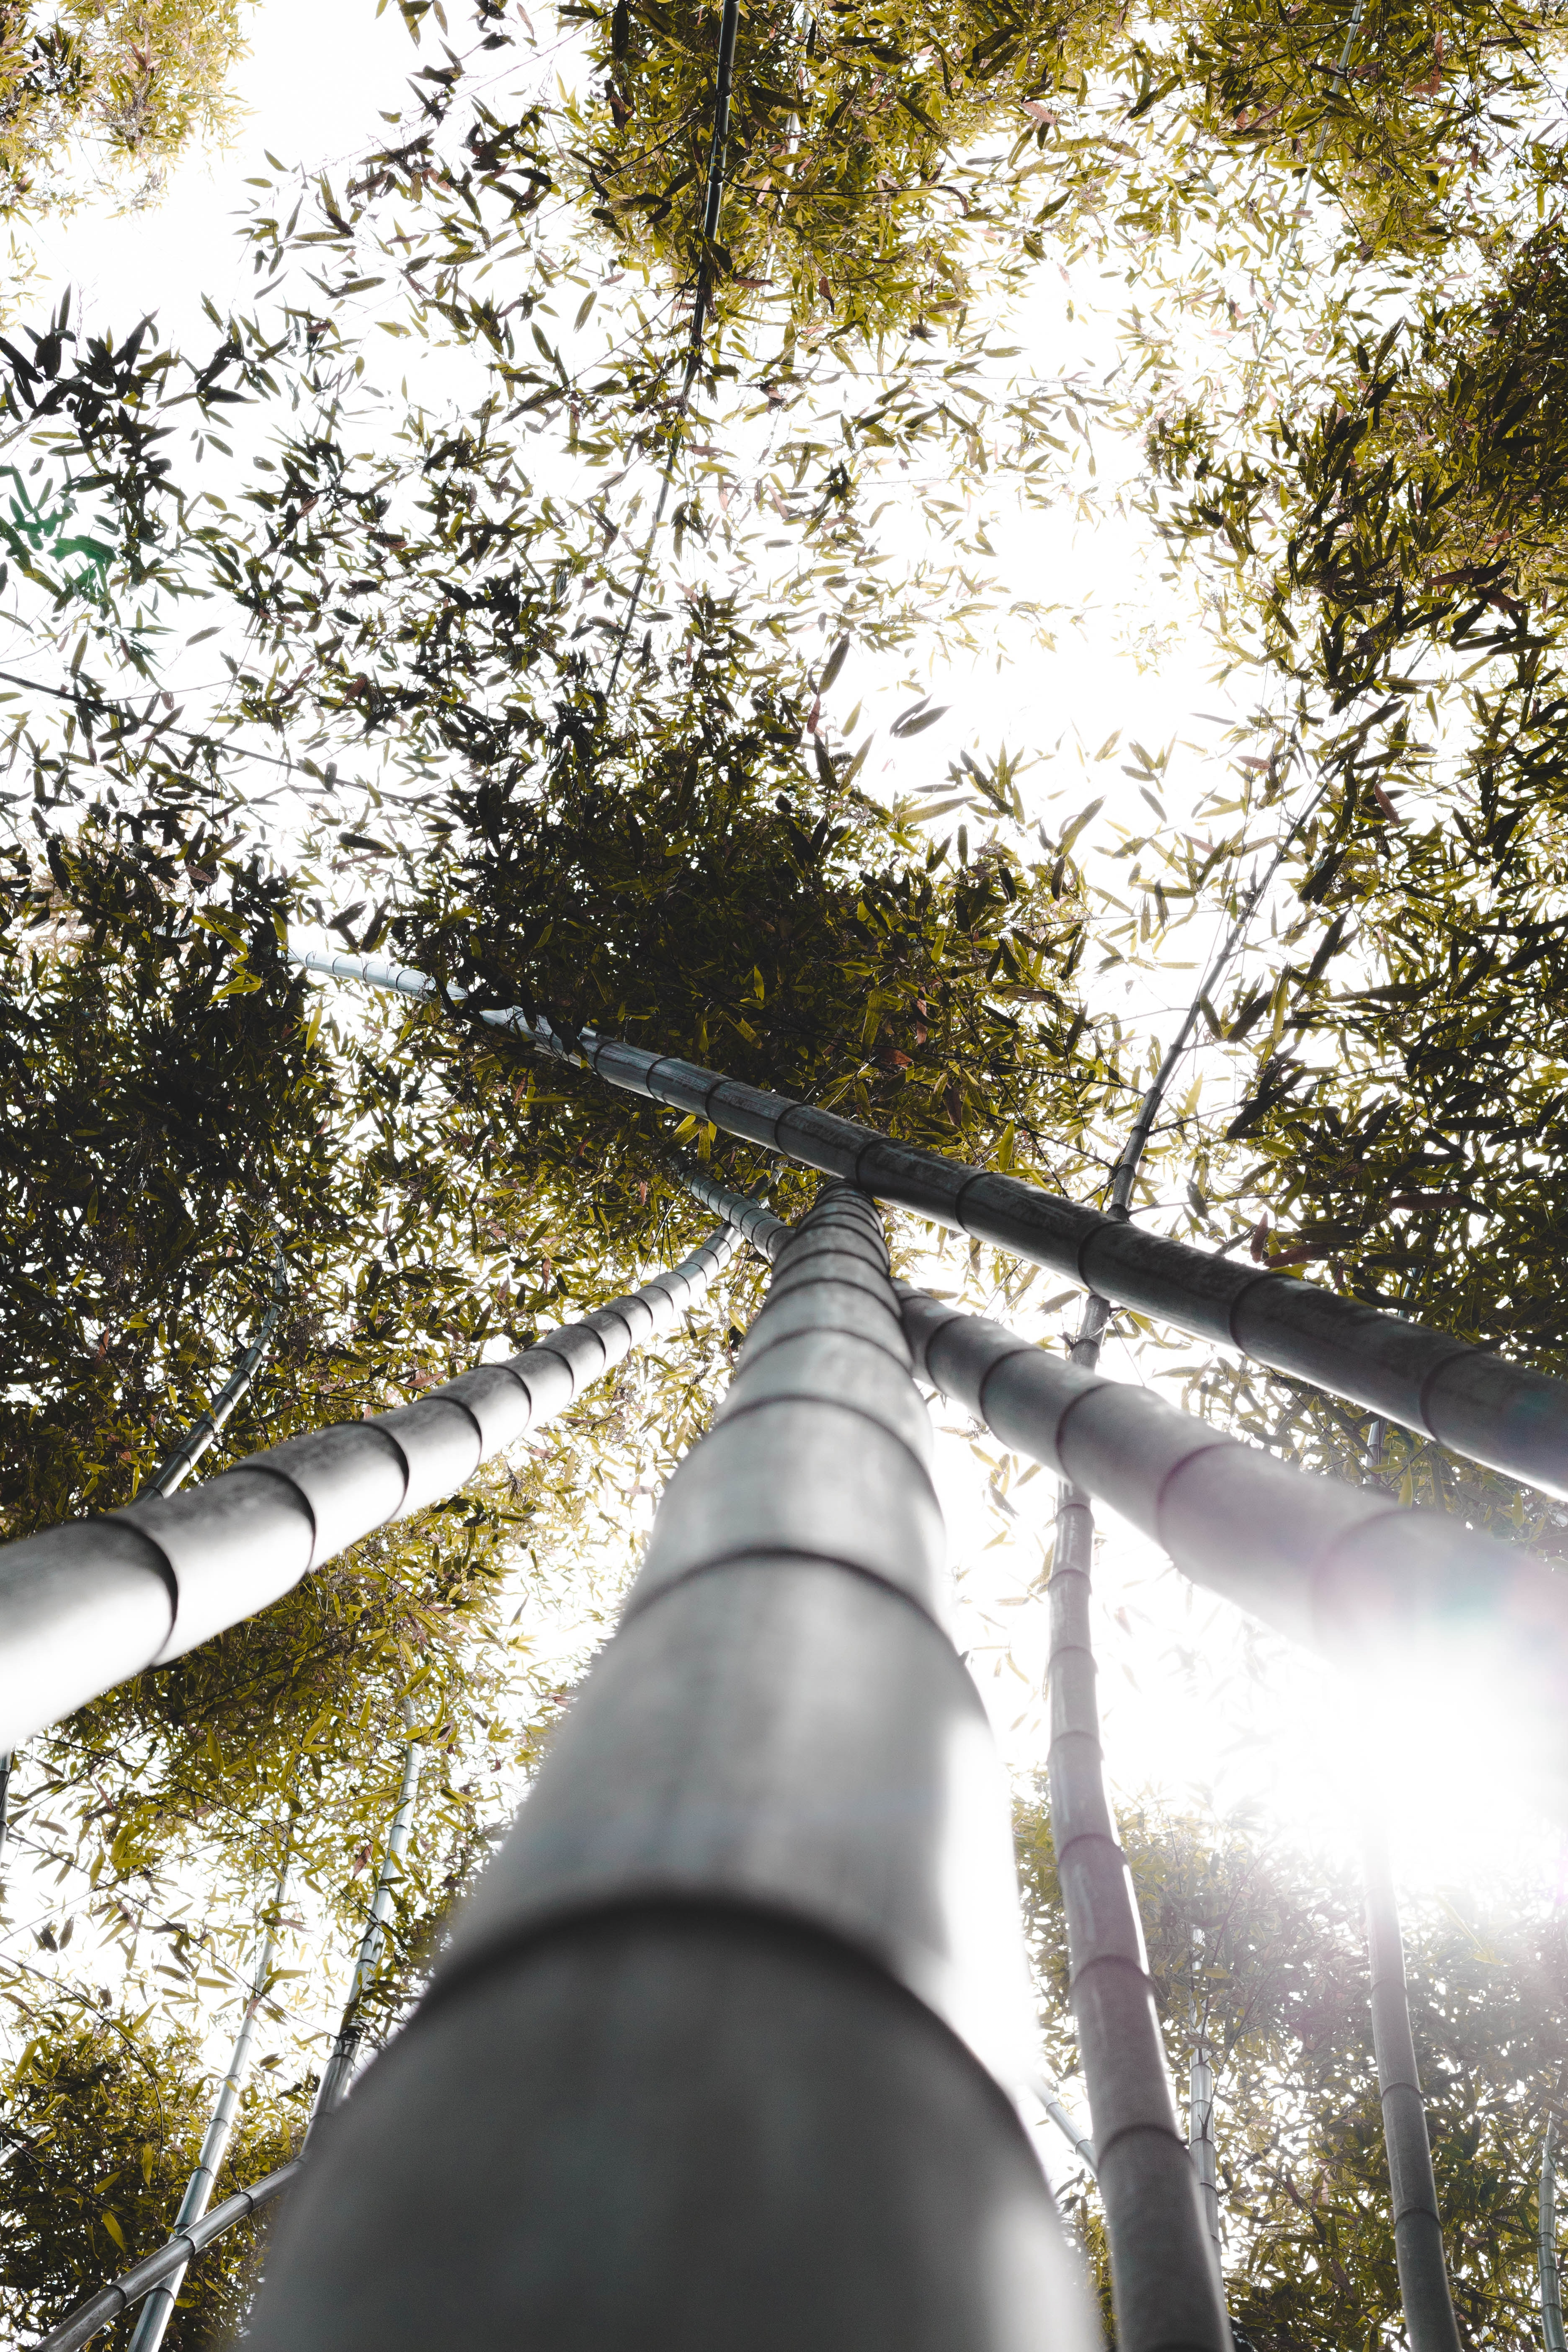 104800 download wallpaper Nature, Bamboo, Trunks, Plants, Leaves, Sunlight screensavers and pictures for free